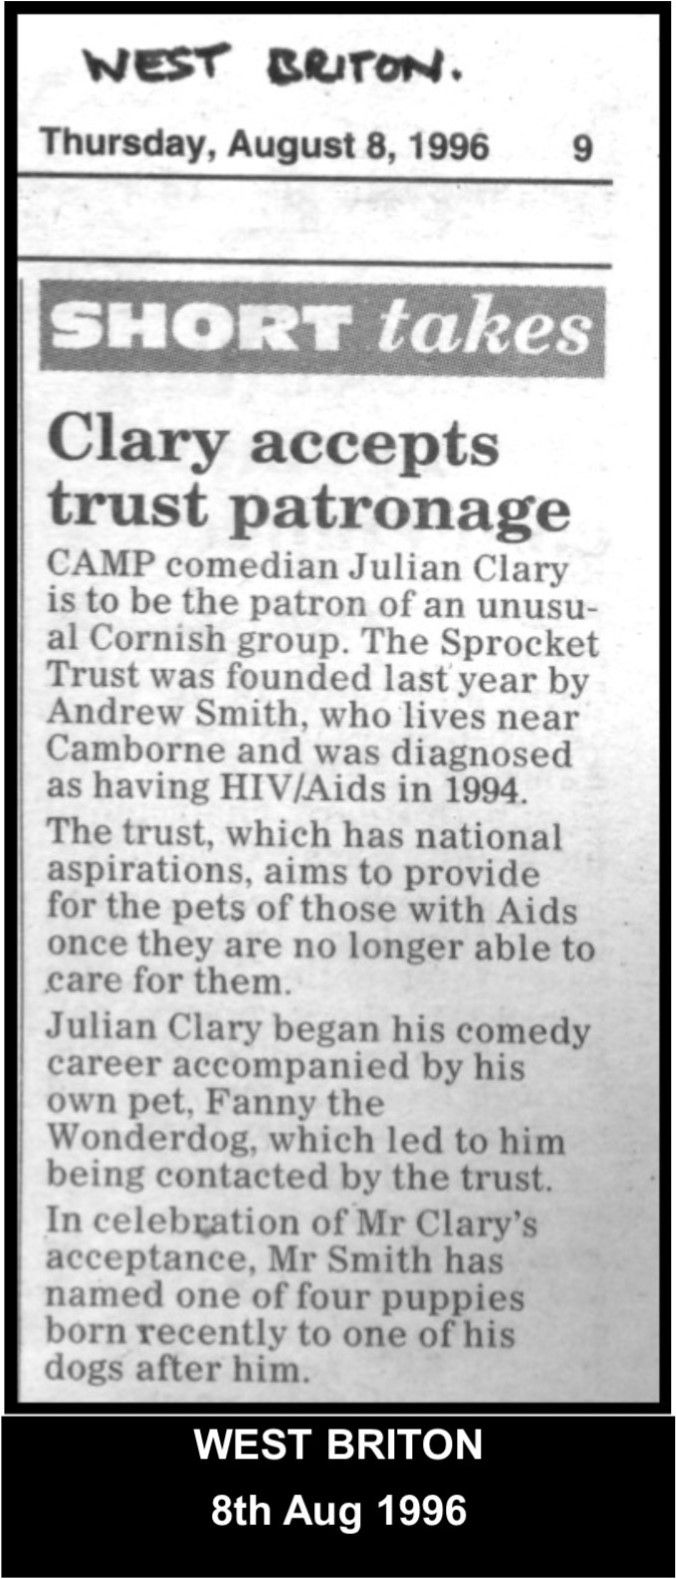 Comedian Julian Clary kindly became patron to the Sprocket Trust.  #LGBT http://www.lgbthistorycornwall.blogspot.com